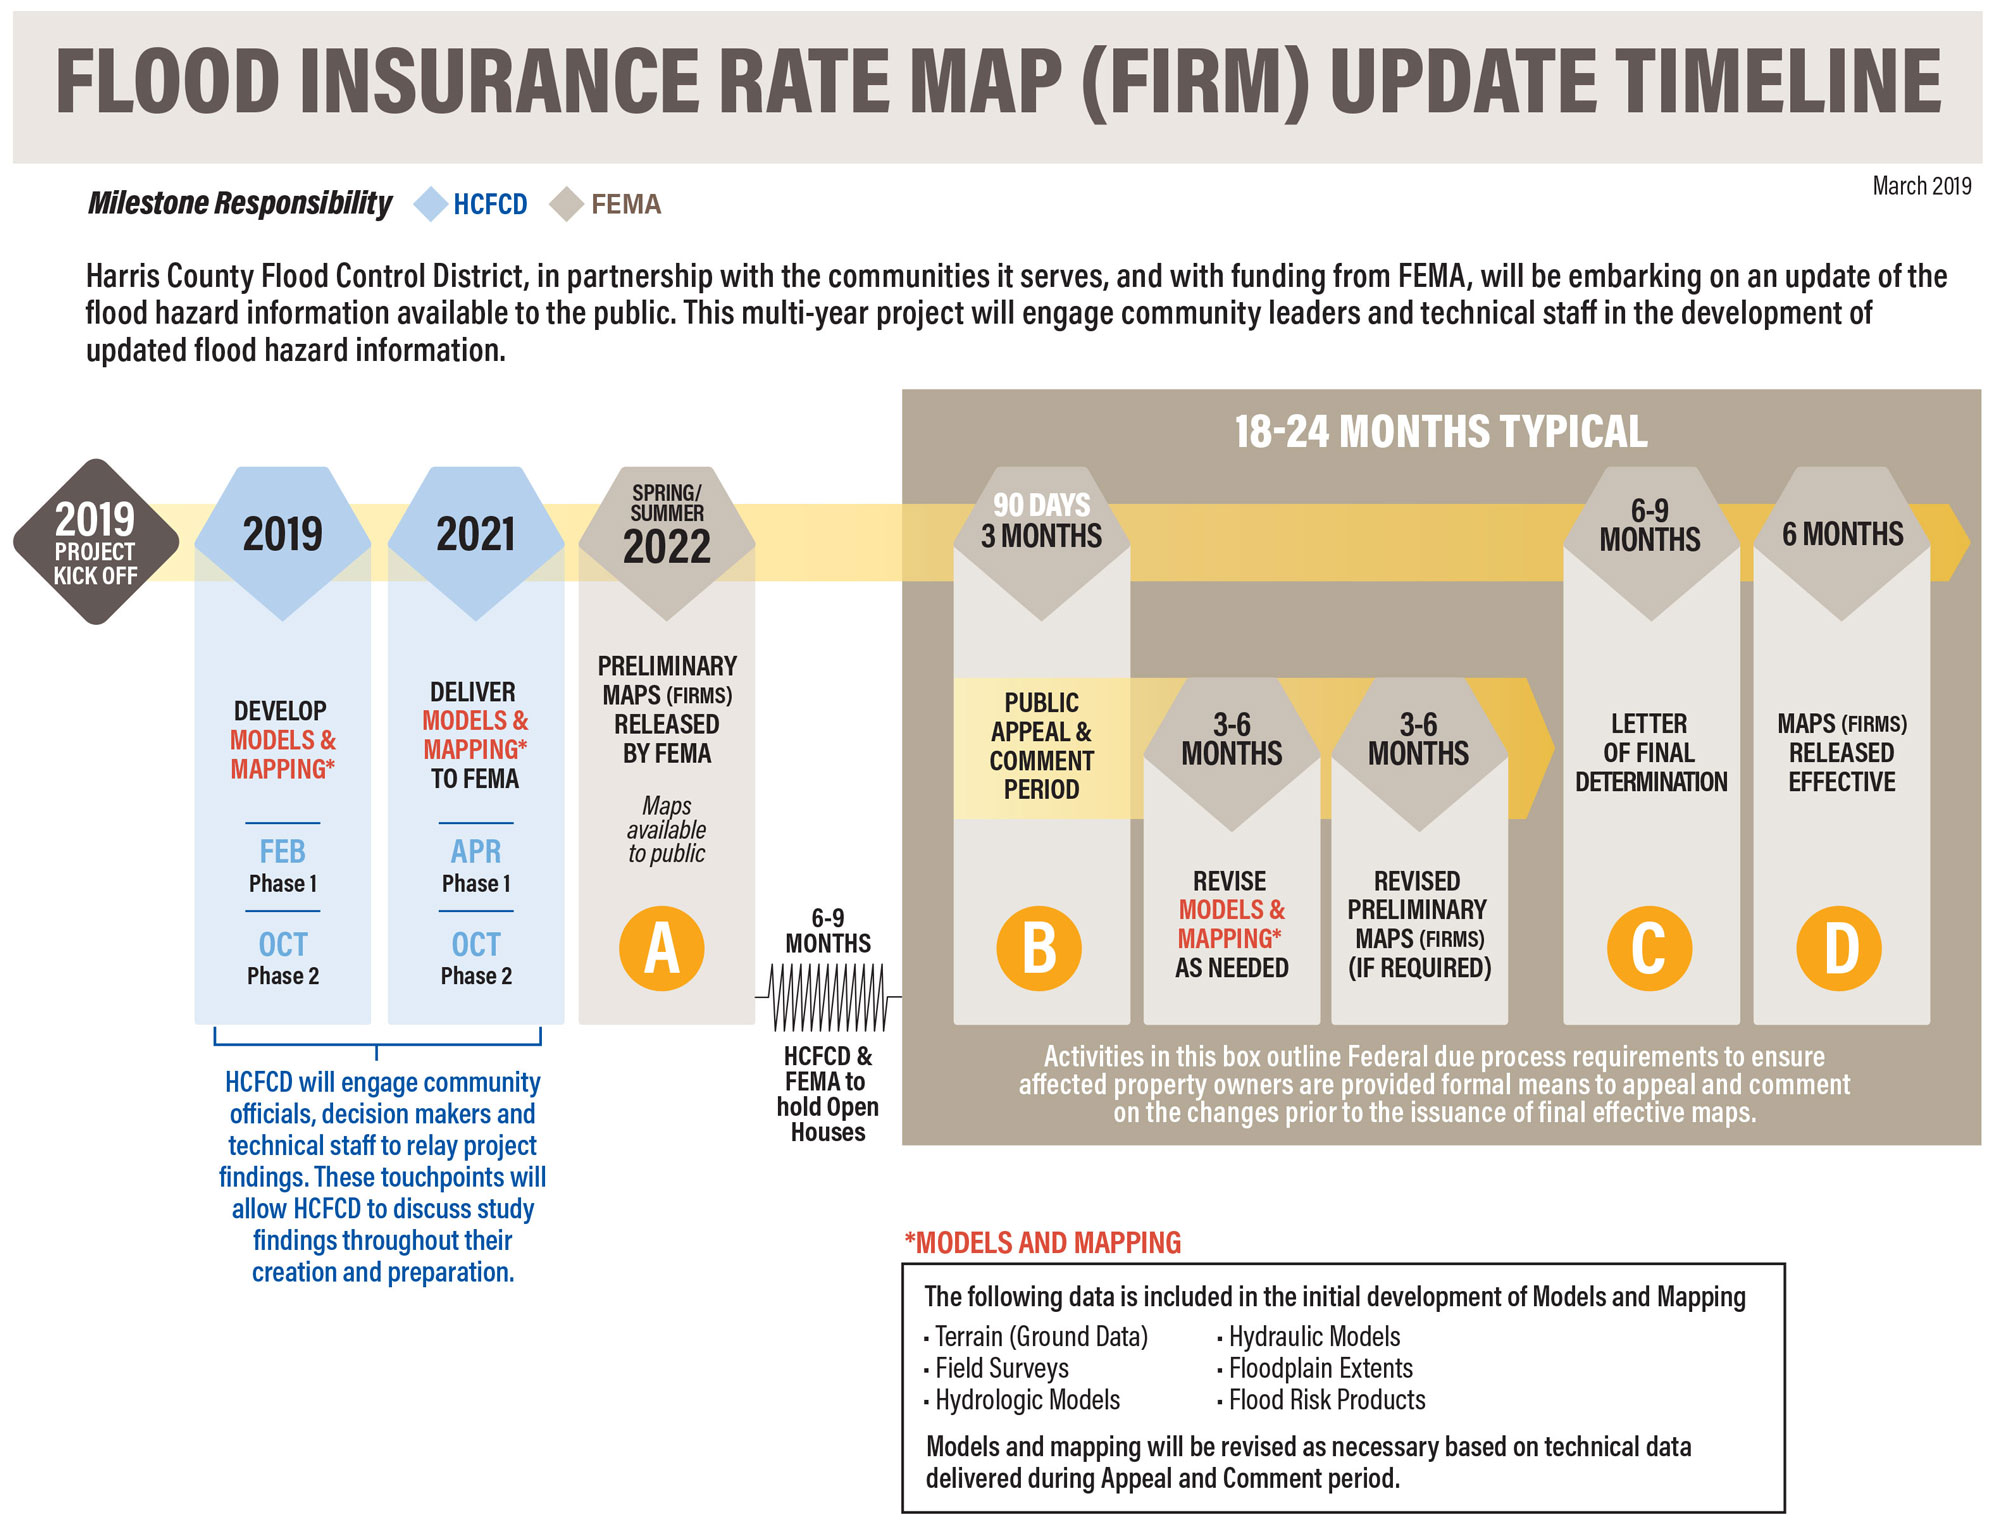 Flood Insurance Rate Map Update Timeline